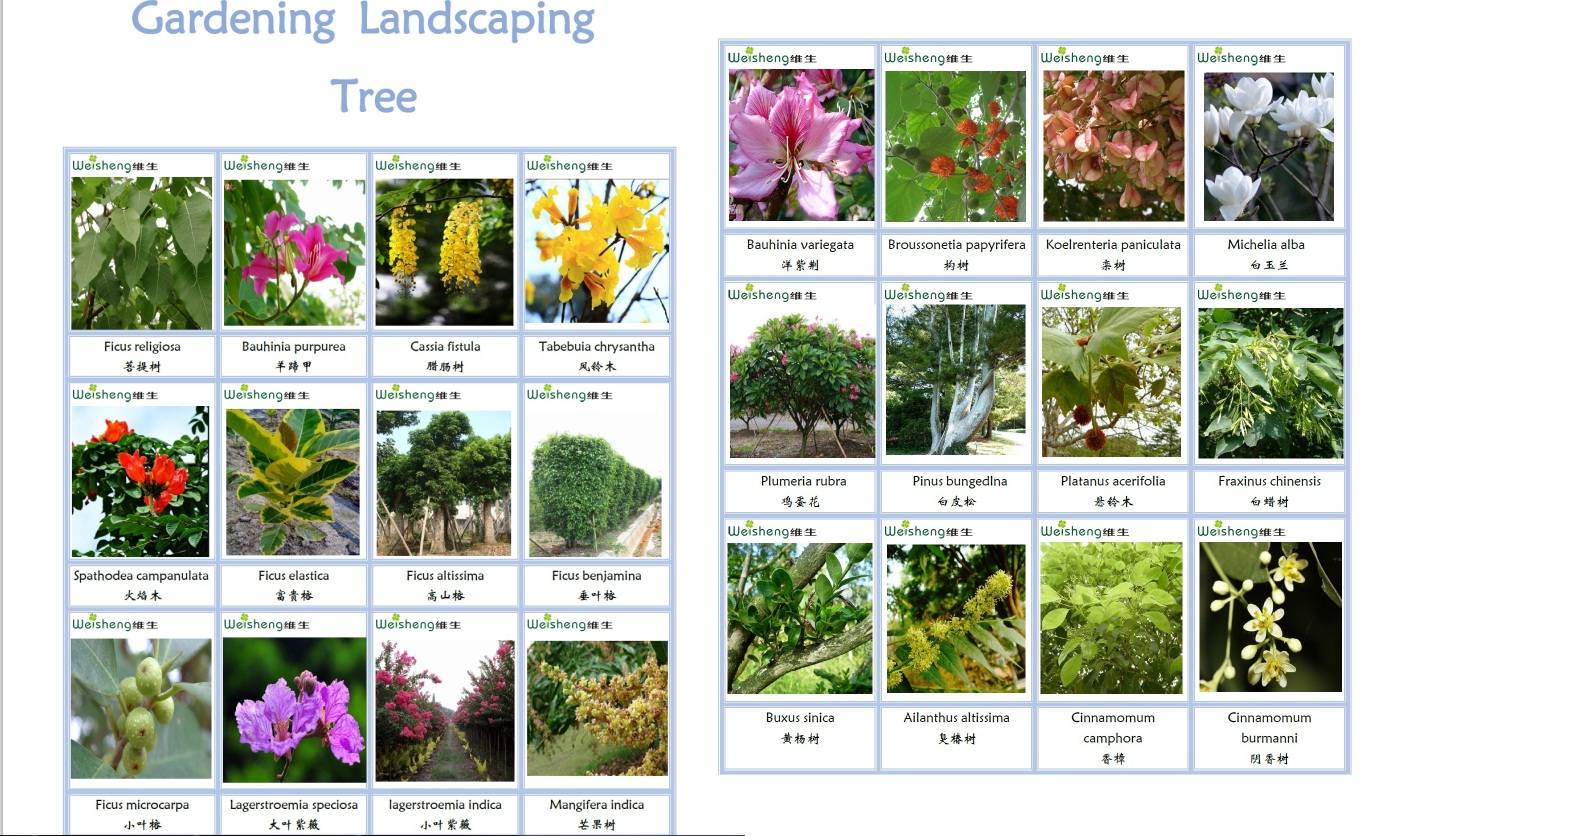 All Kinds of gardening landscaping tree